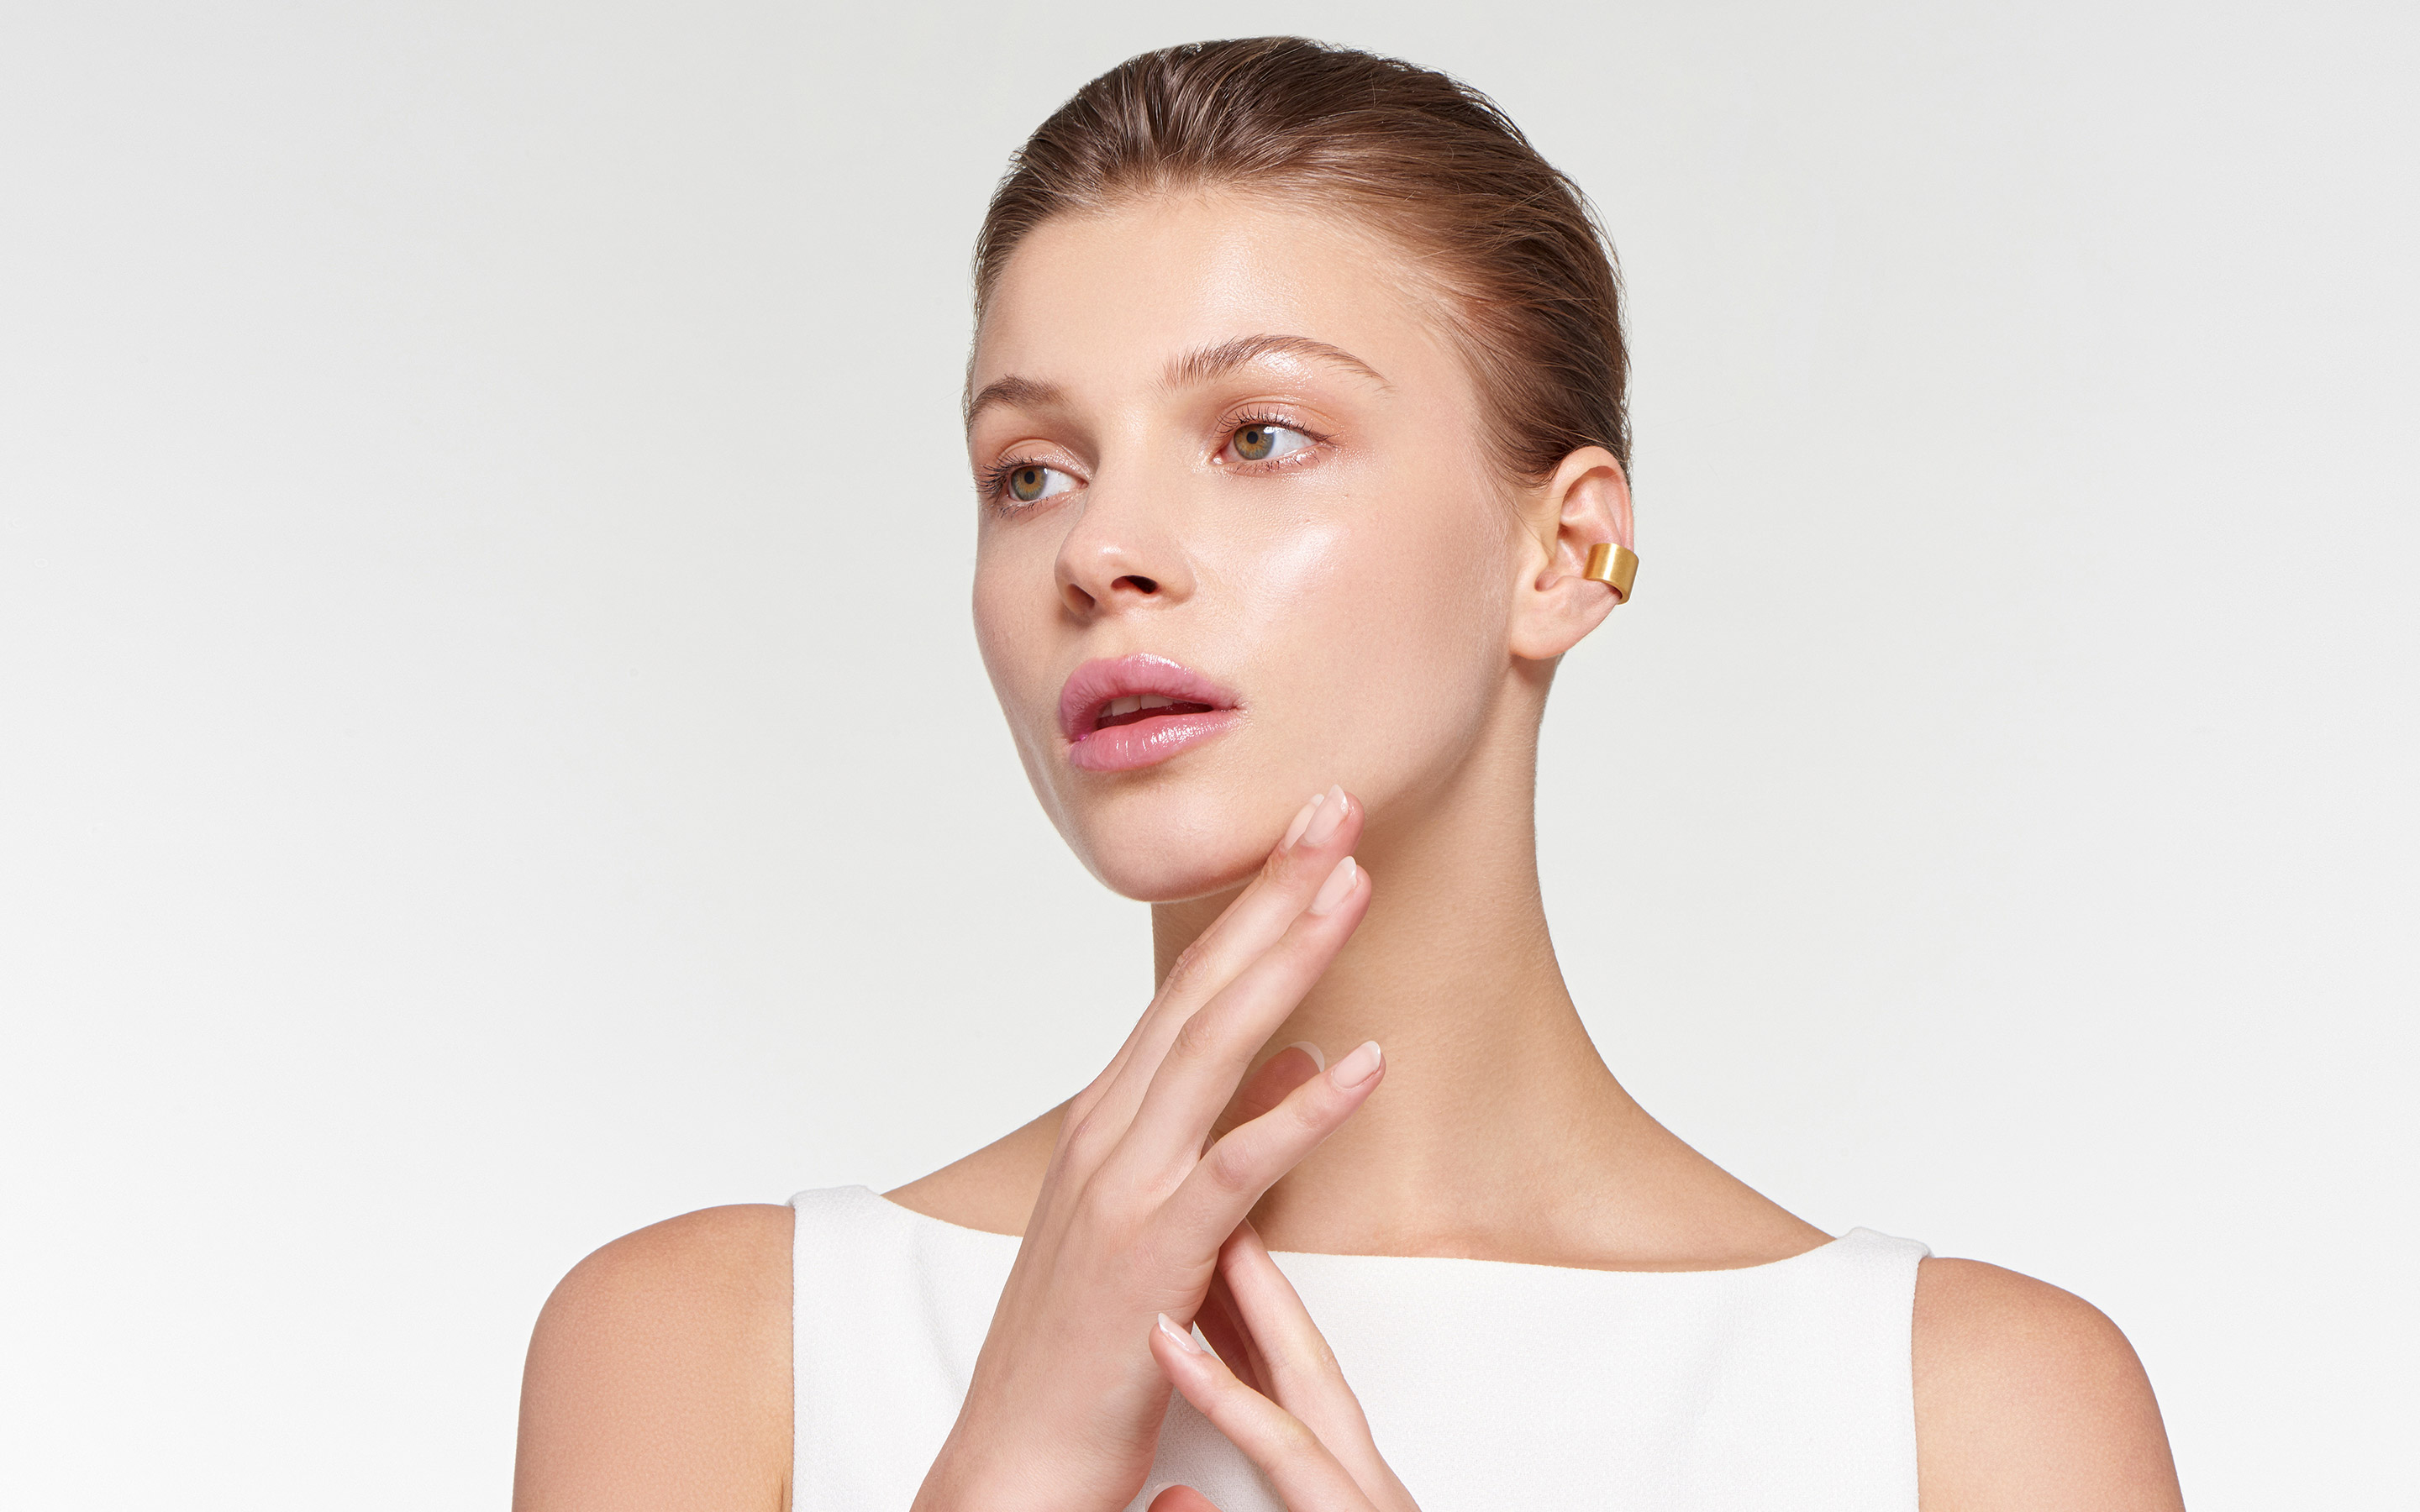 flaming ear cuffs made of 22 karat gold on elegant model gazing into the distance